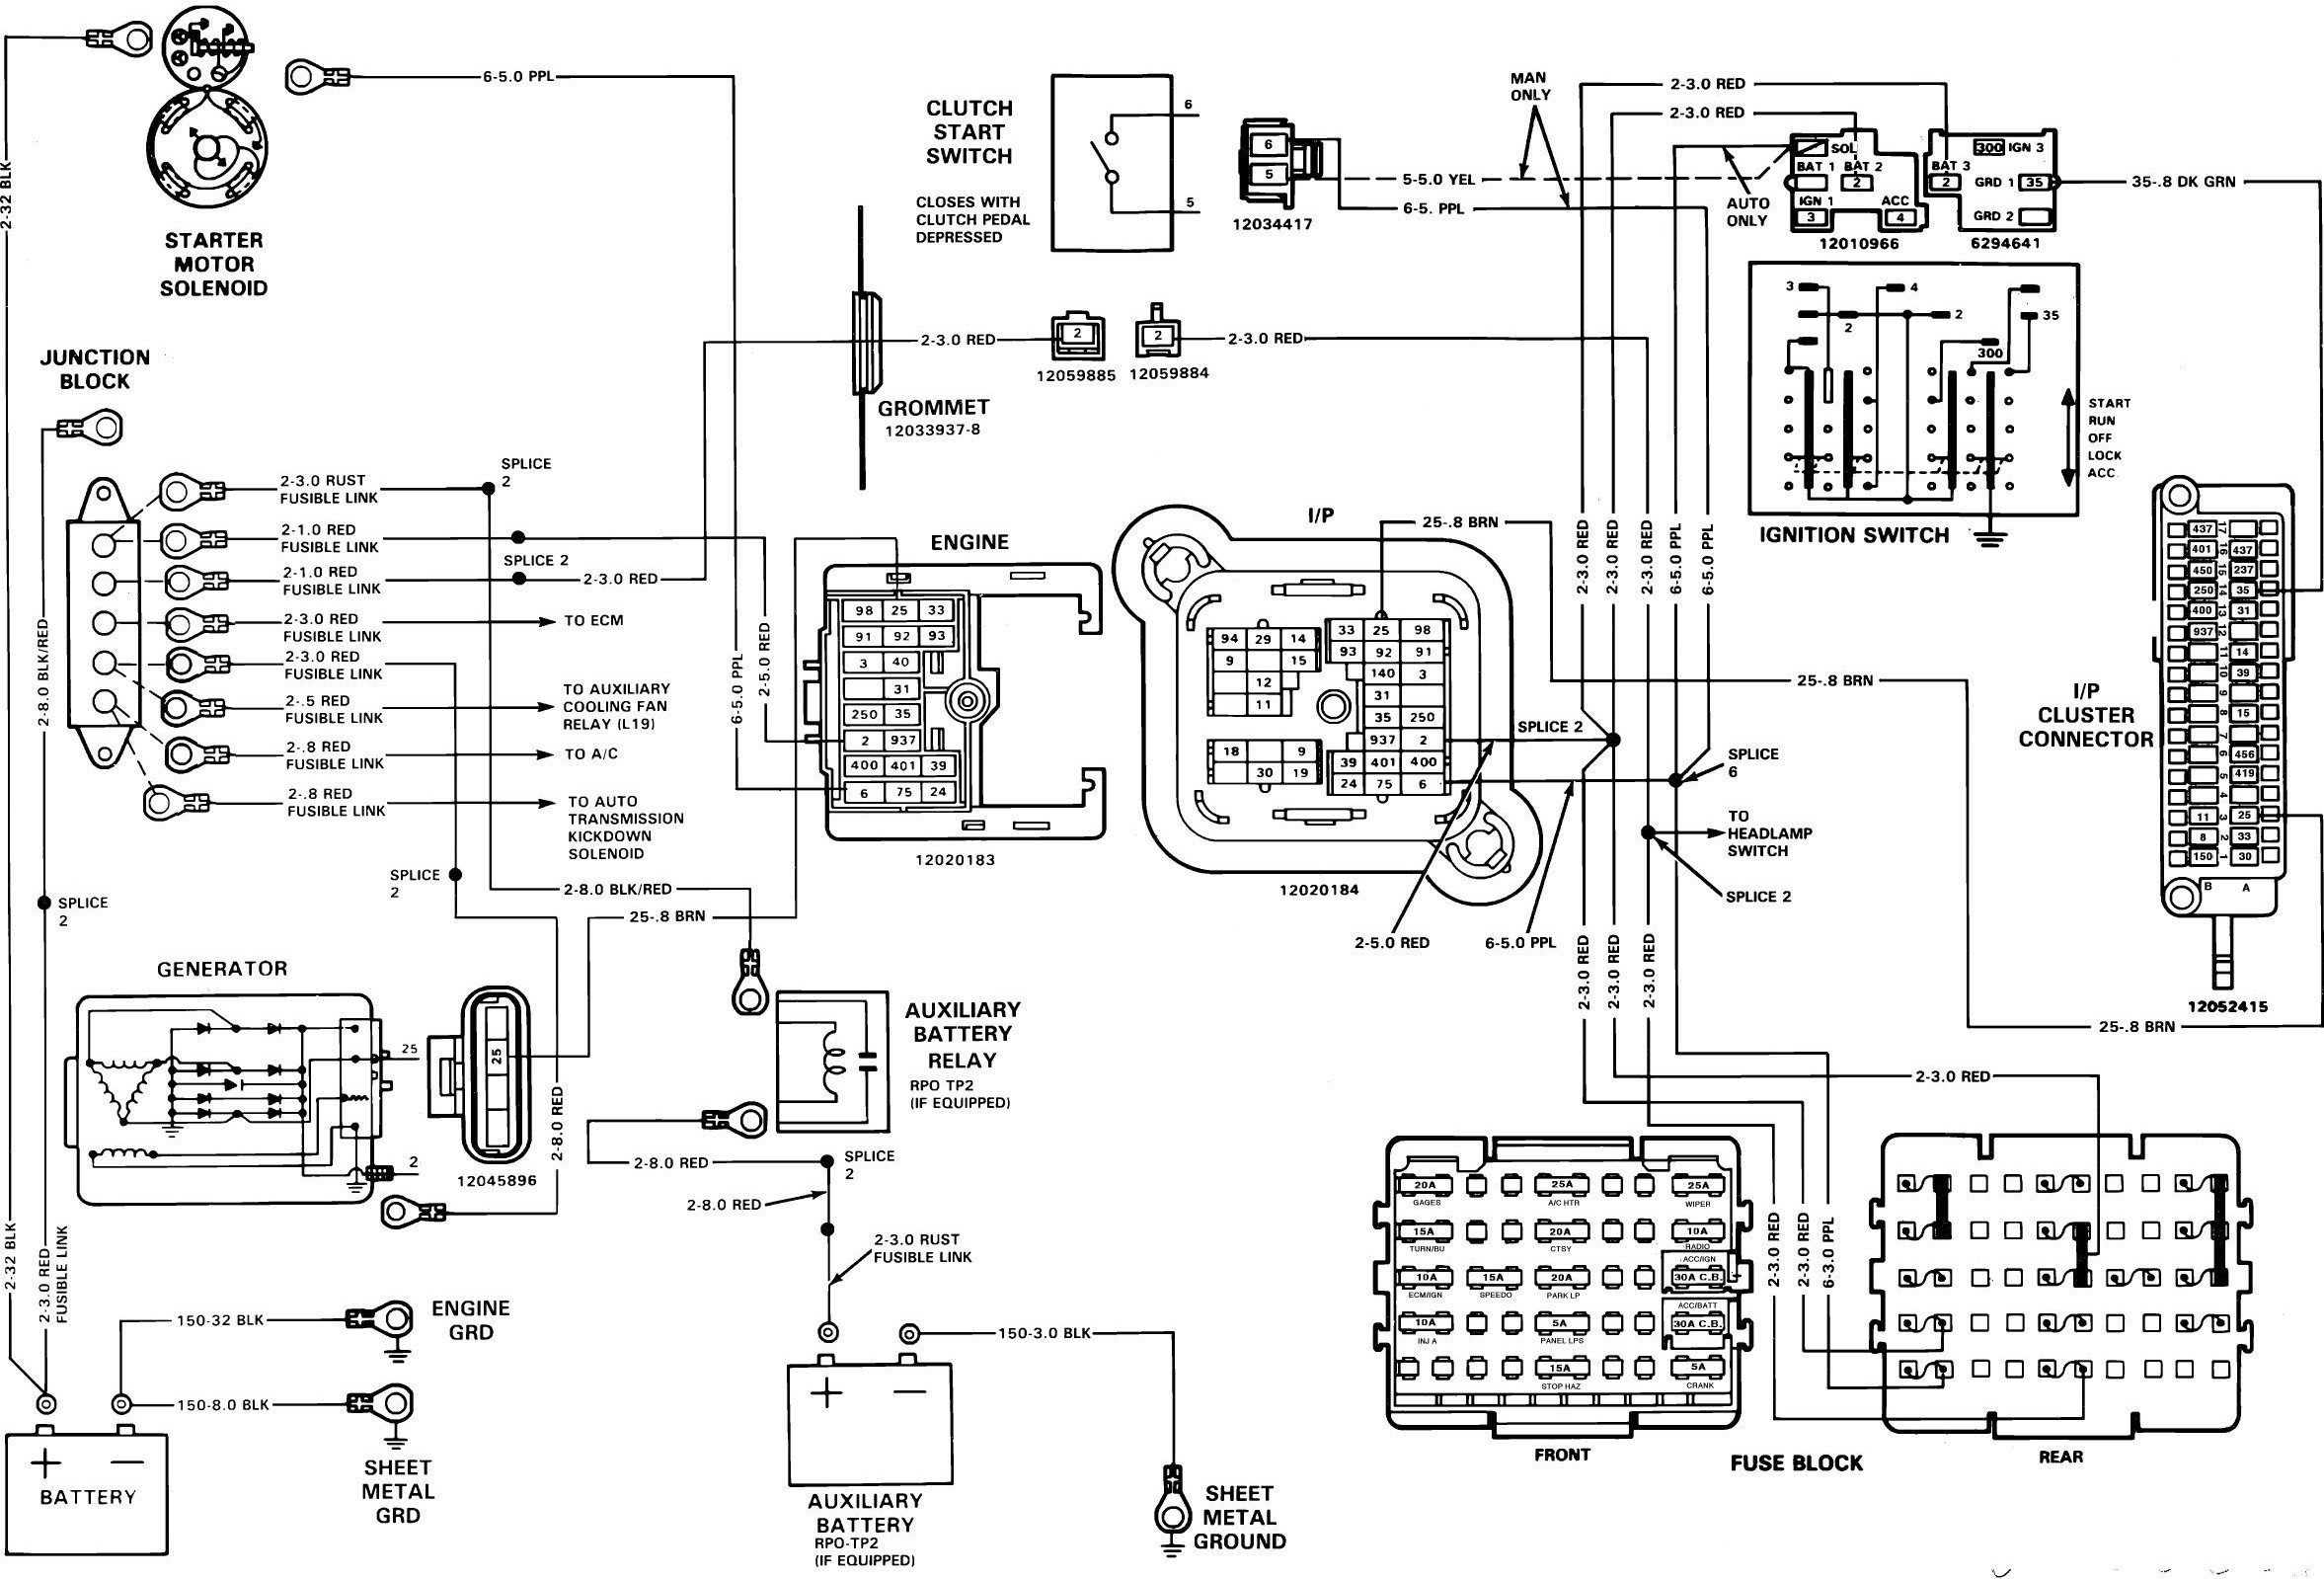 Chevy Silverado Wiring Harness To Fuse Box Diagram